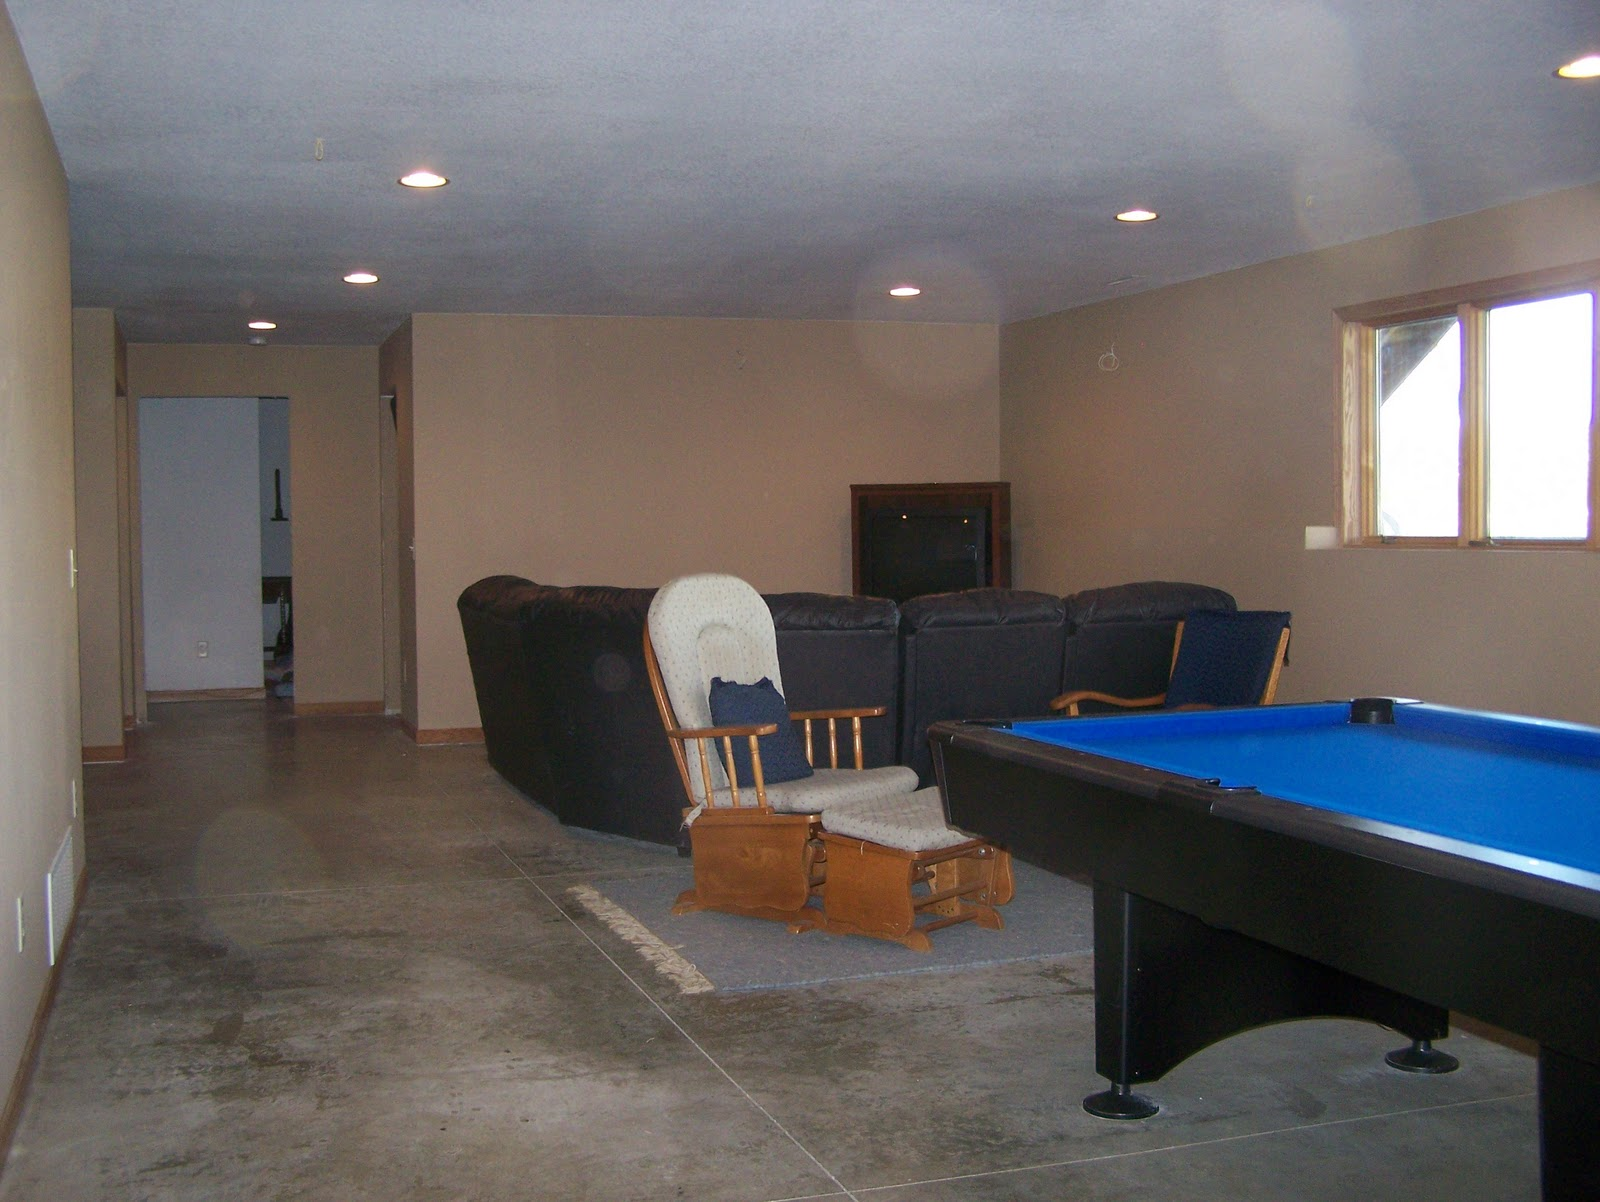 home for sale: Basement rooms. Plus 1 storage room, 1 ...